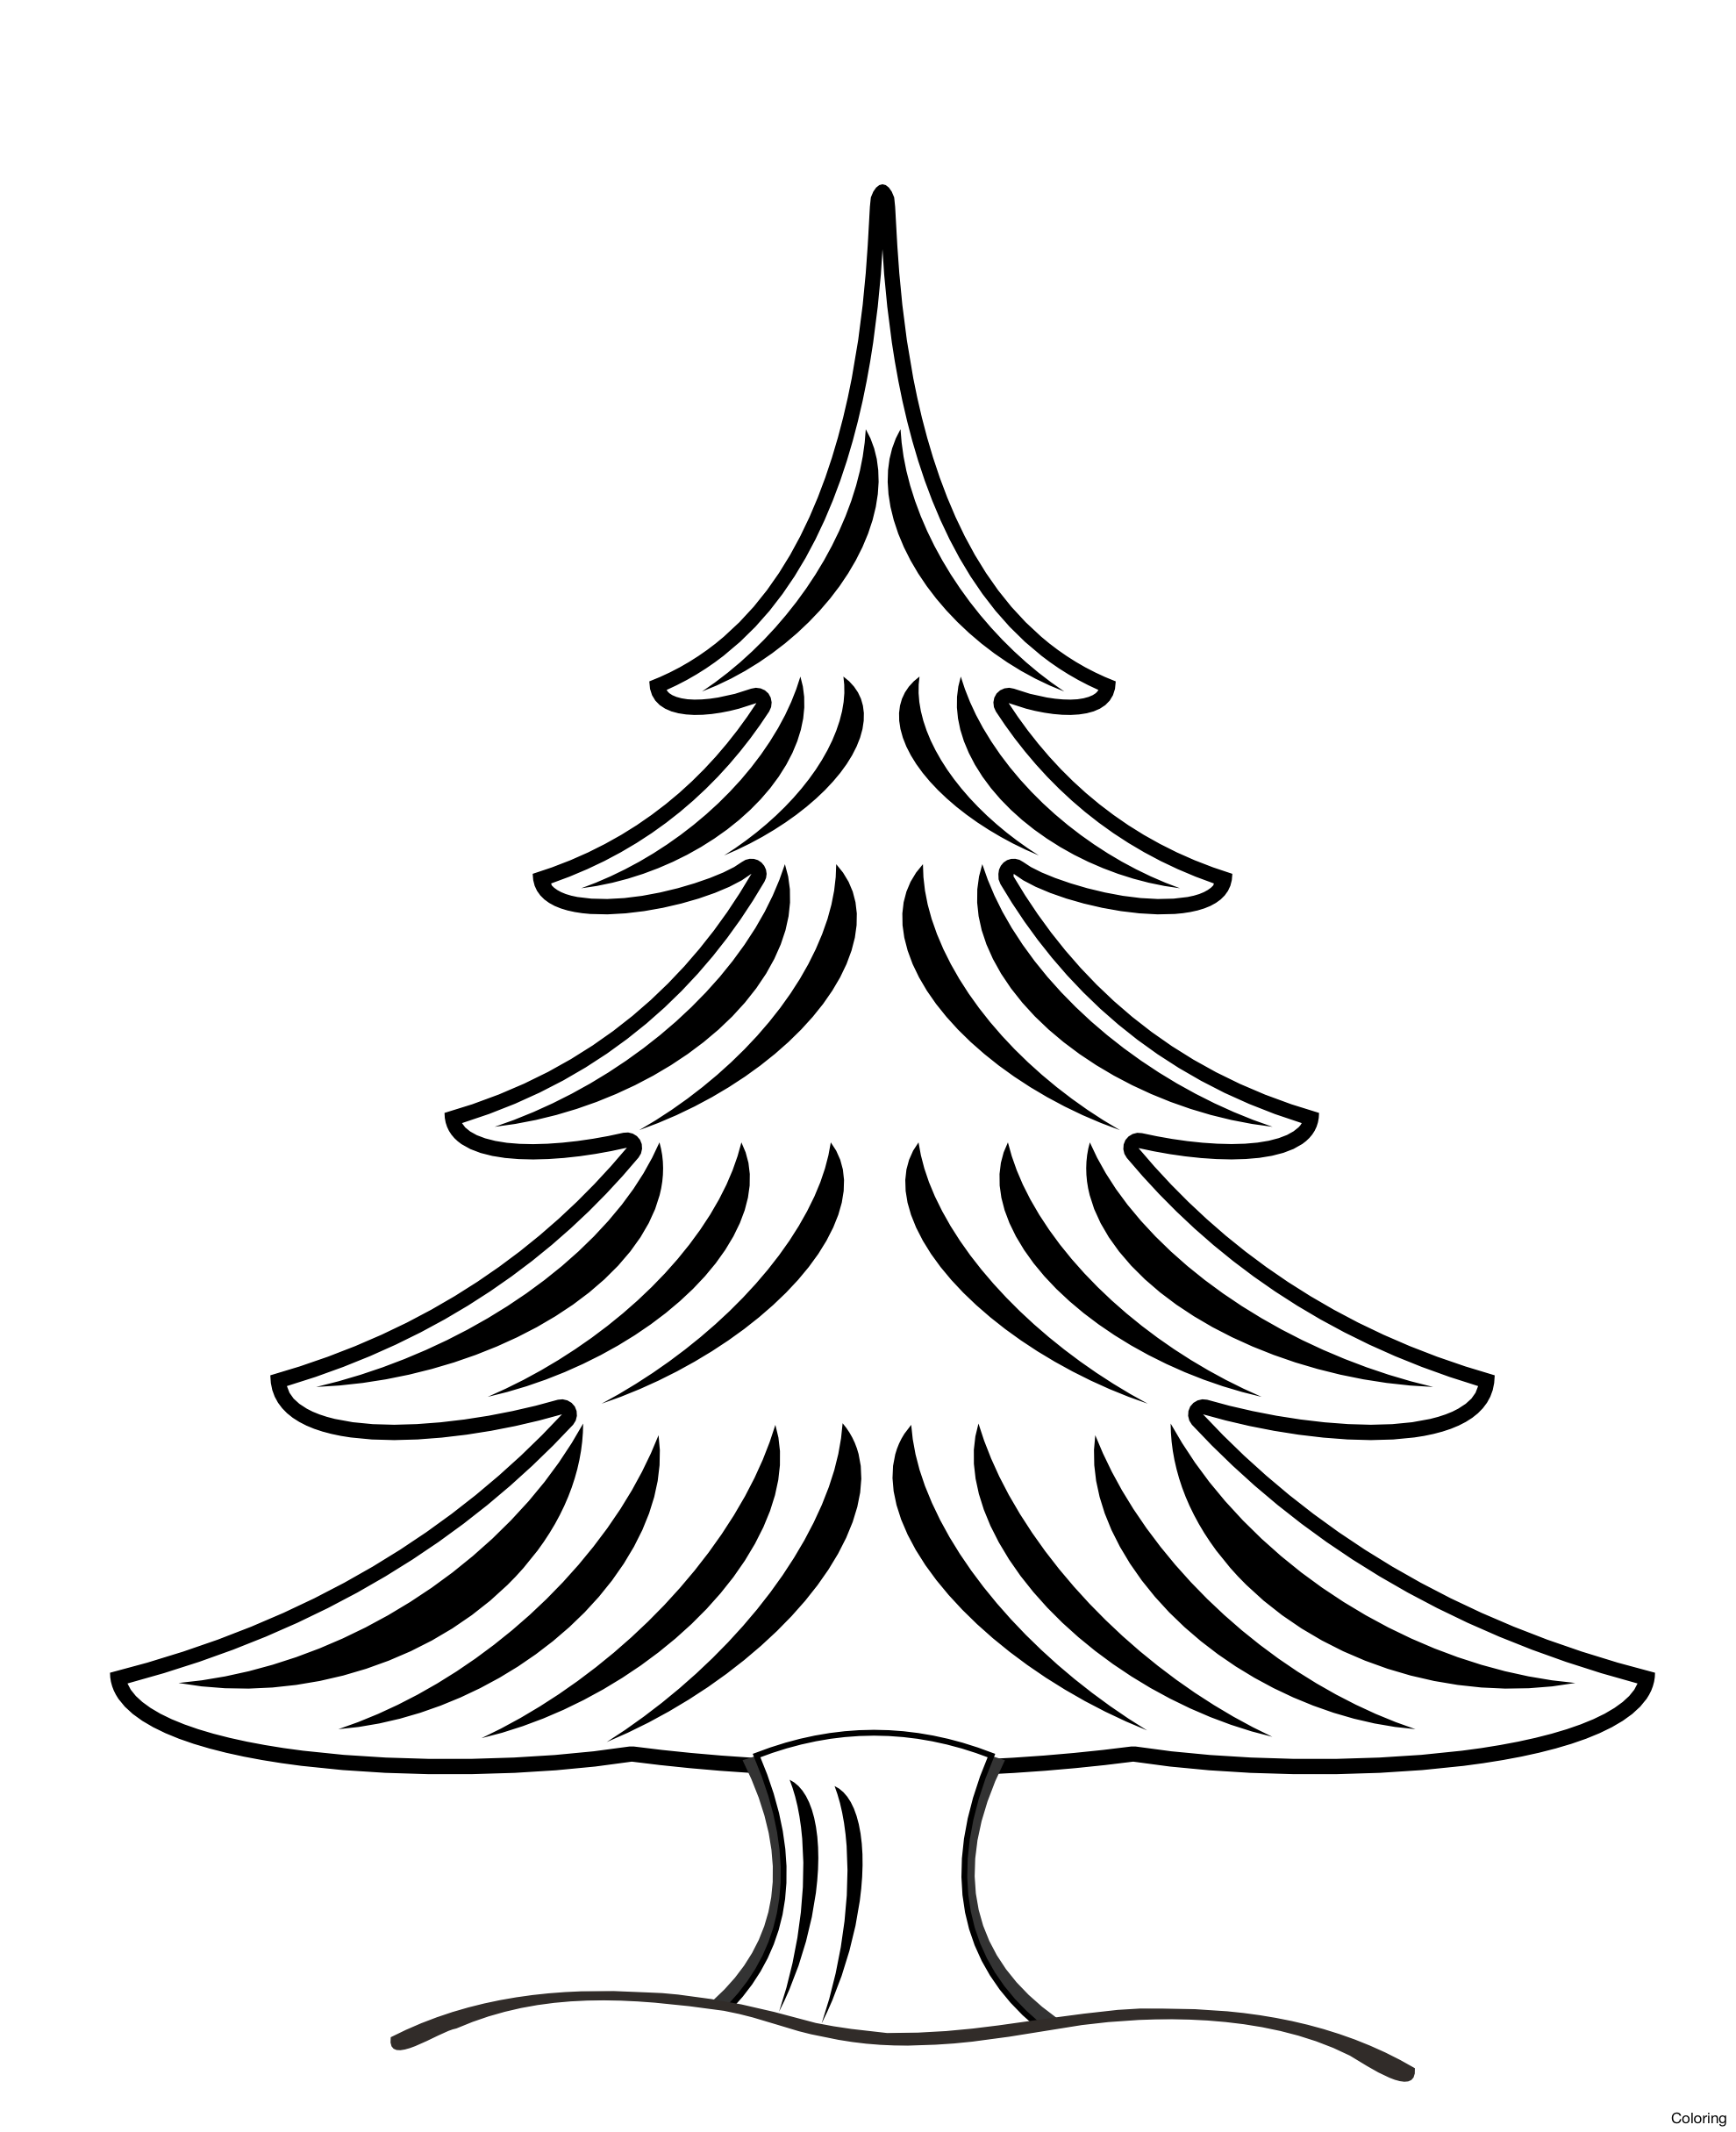 Pine tree clipart black and white graphic transparent stock White Pine Drawing at GetDrawings.com | Free for personal use White ... graphic transparent stock